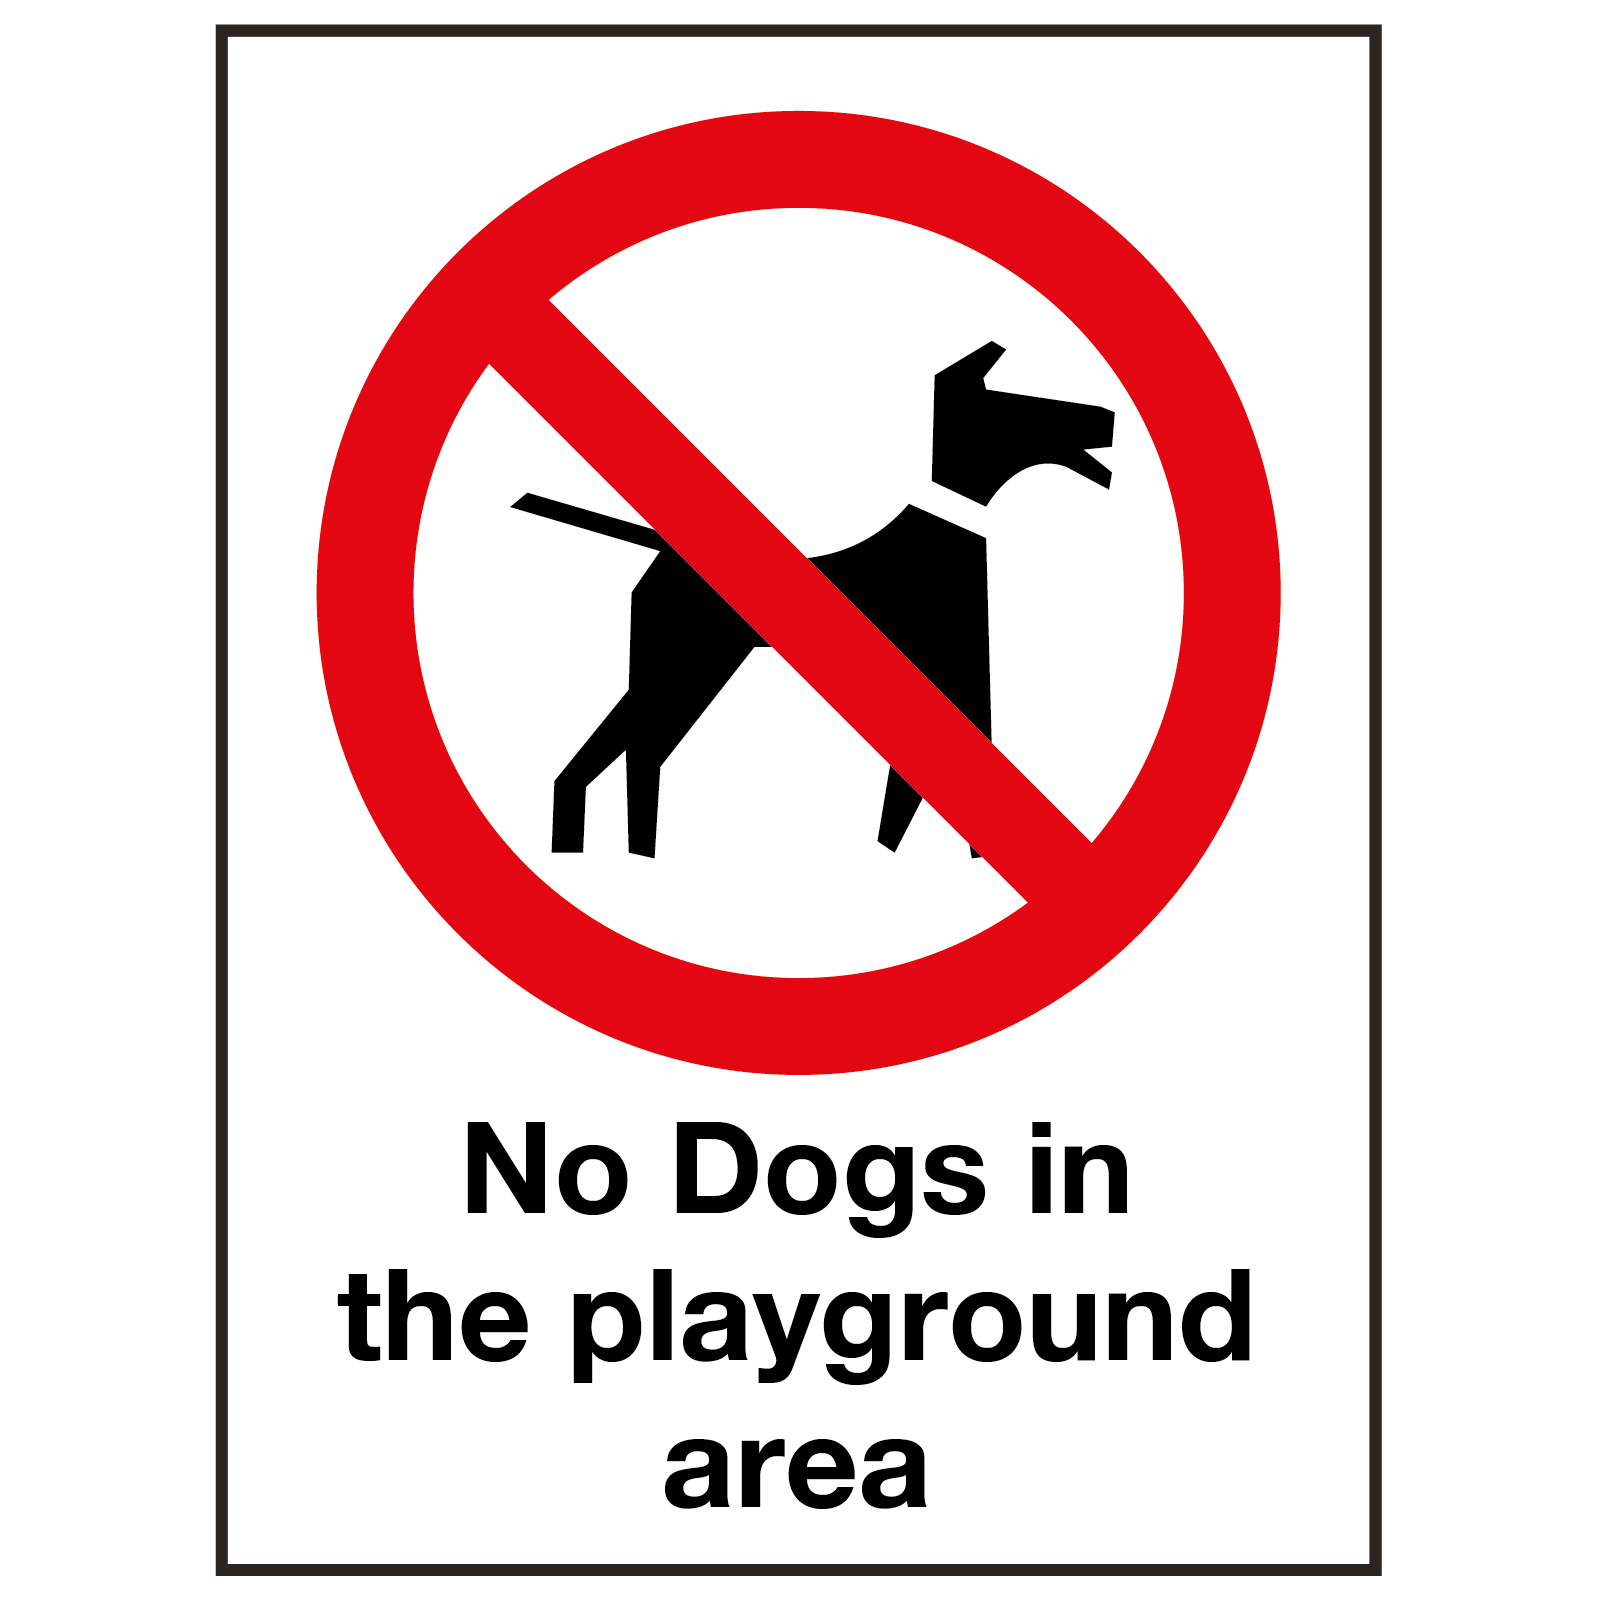 External No Dogs in the Playground Sign